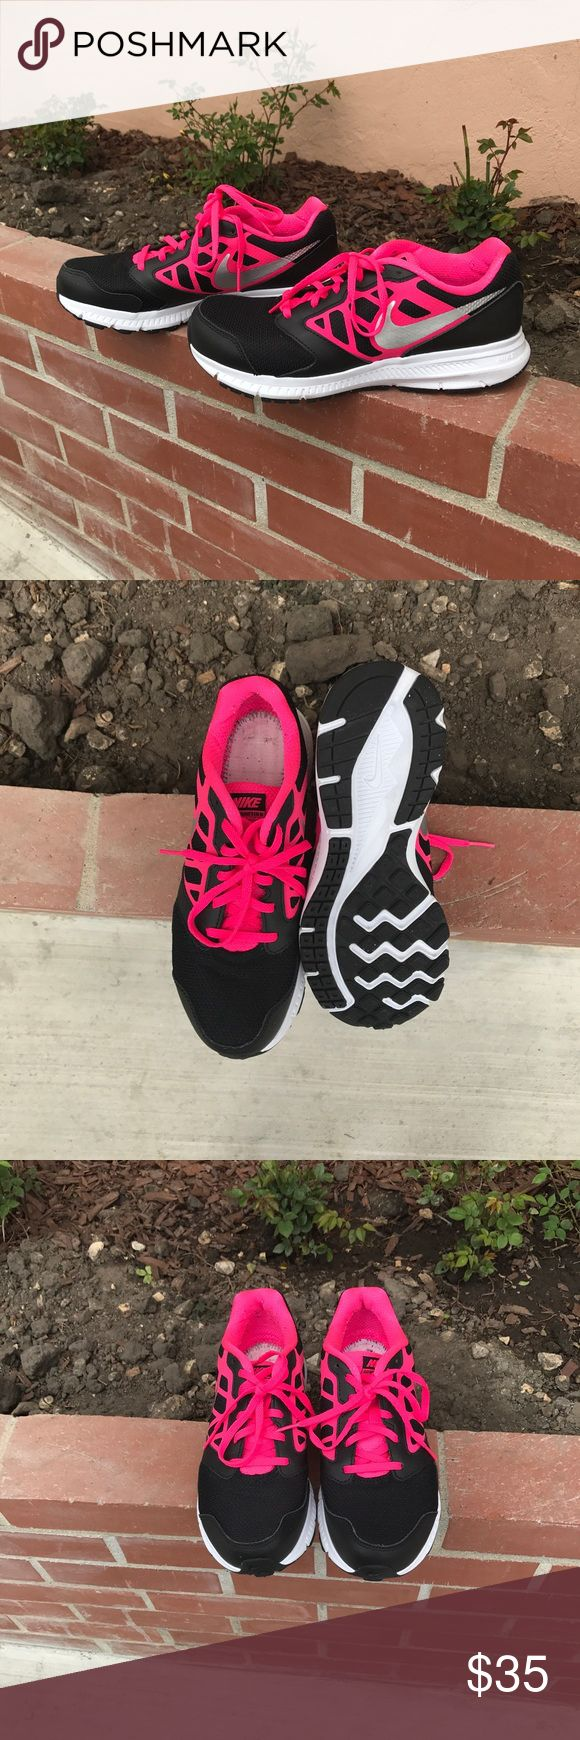 Nike Downshifter 6 Worn twice. Took out the soles and I think I threw them away so they will not be included with the shoes. Running shoes. Shoe tag says 6Y but fits a woman's size 8. Offers welcome. Nike Shoes Athletic Shoes